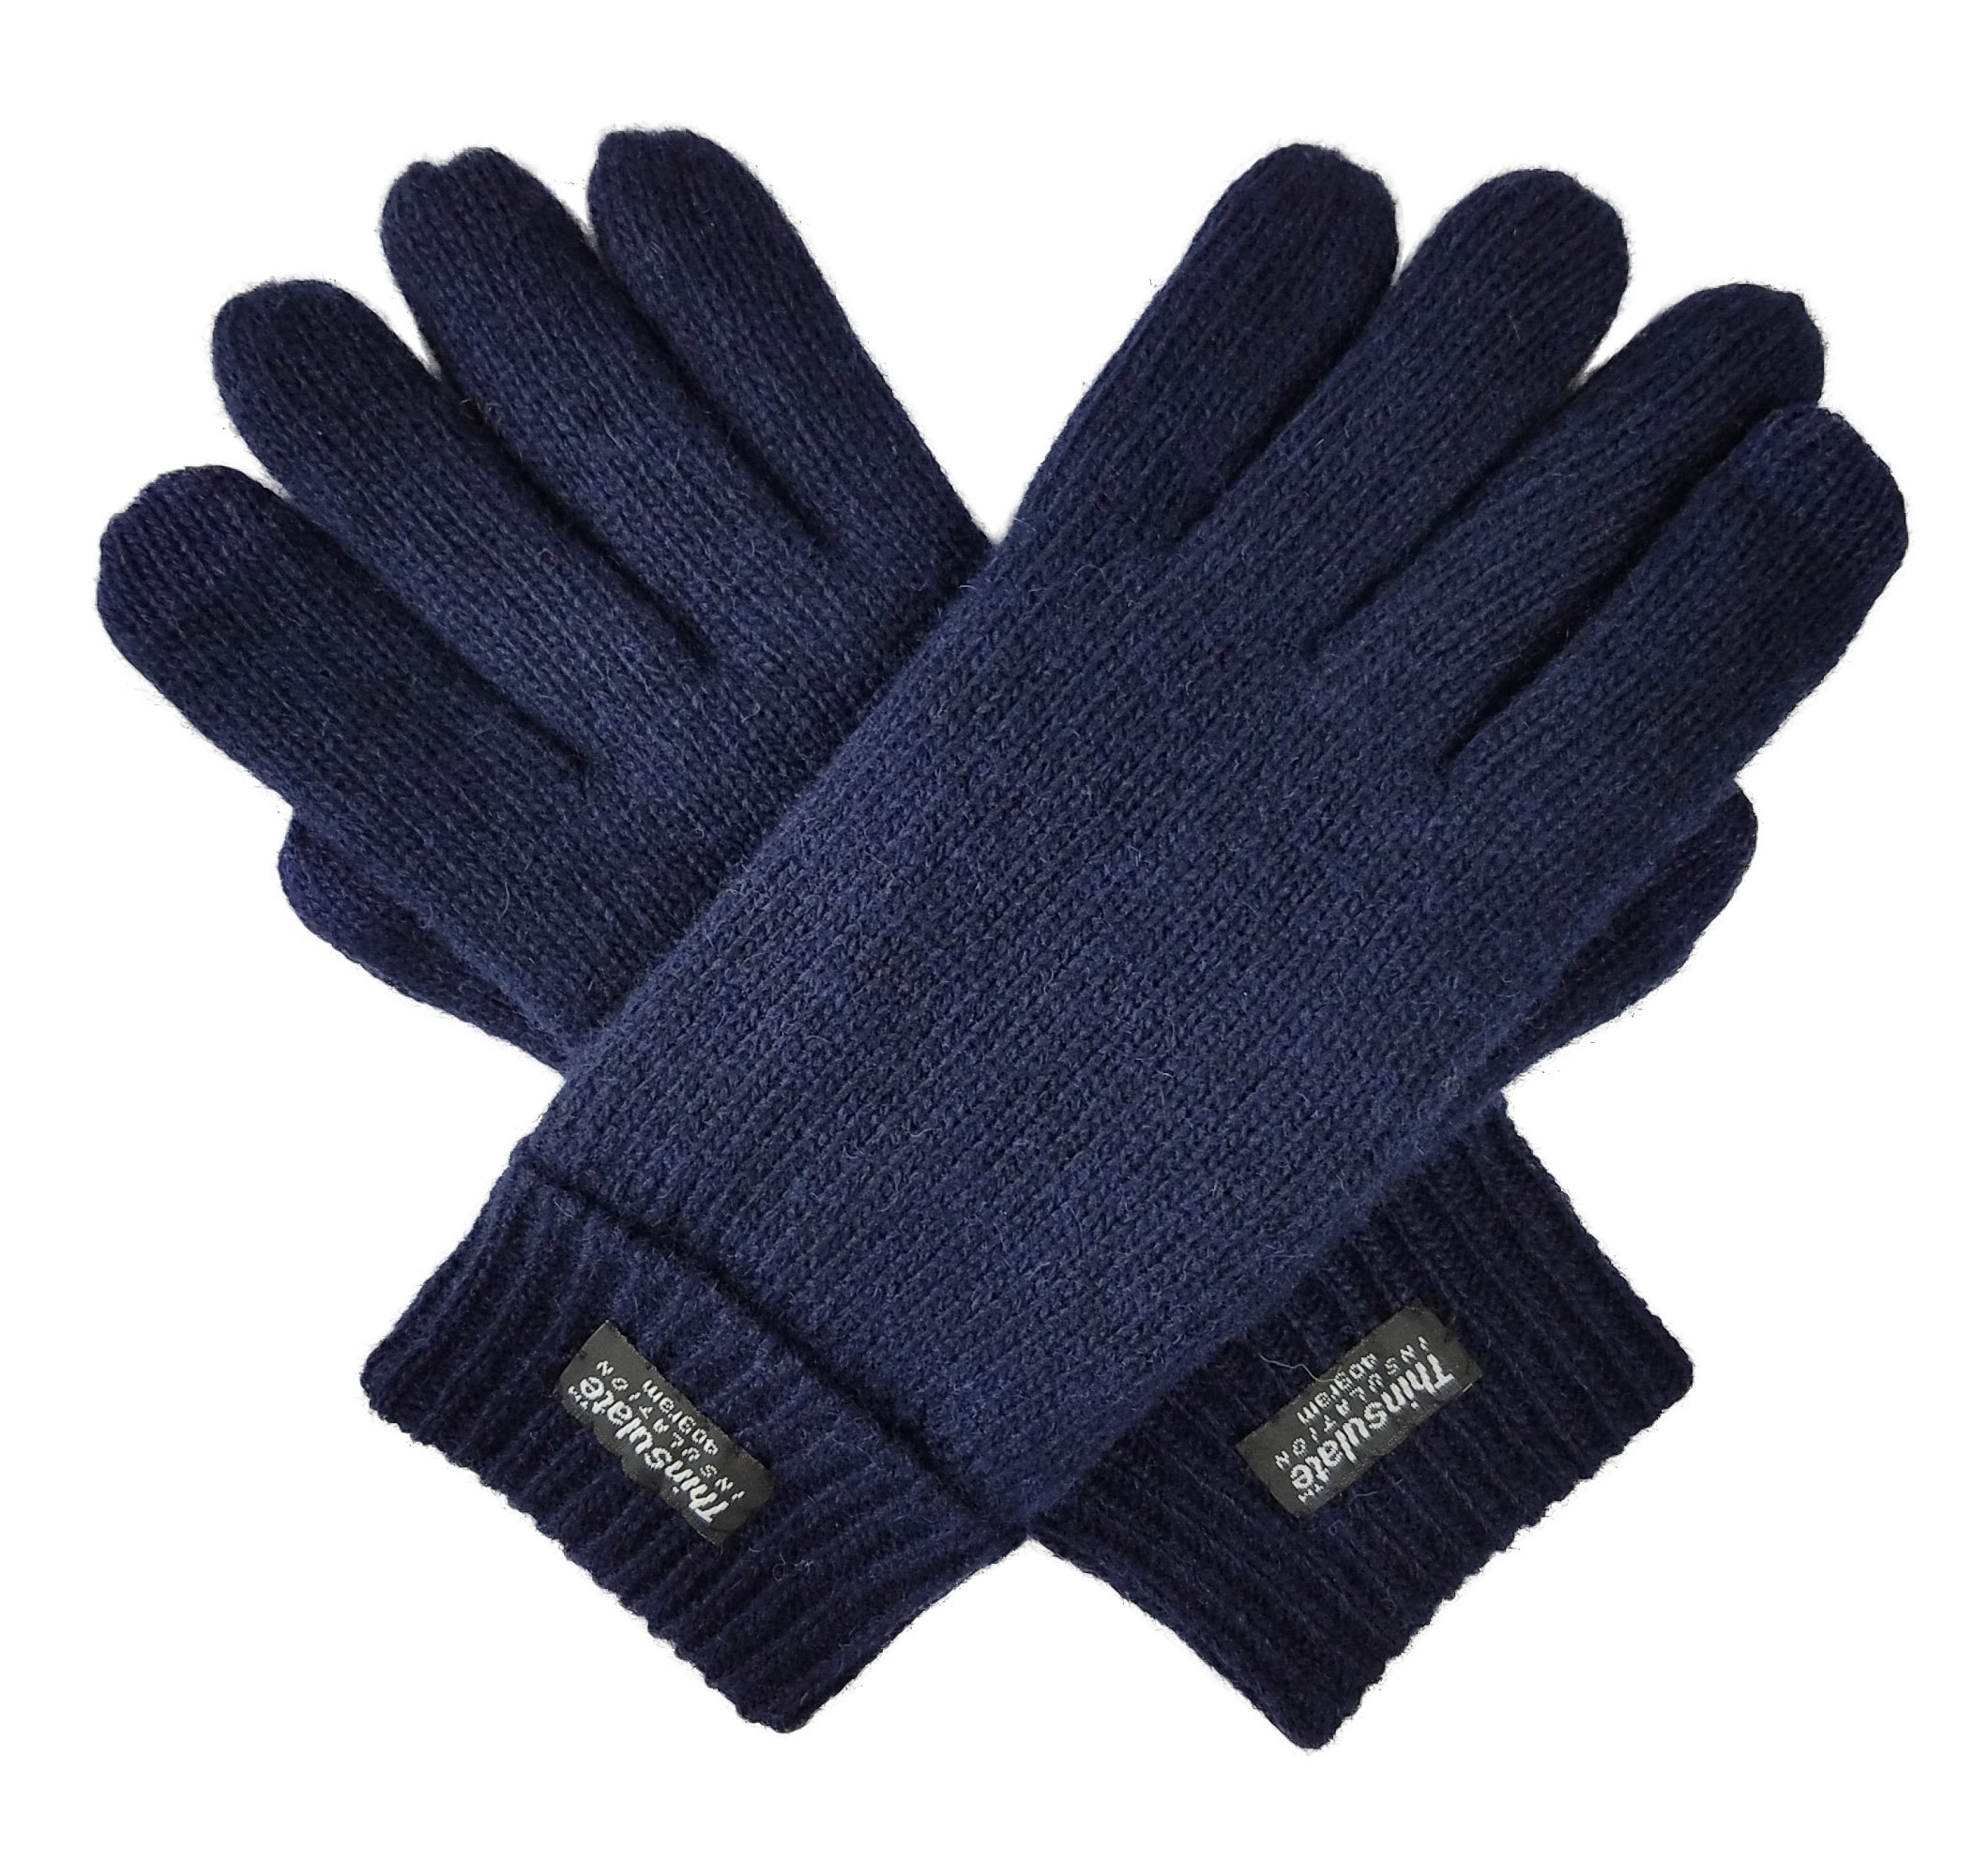 Bruceriver Ladie's Wool Knit Gloves with Thinsulate Lining Size L (Navy Touchscreen)